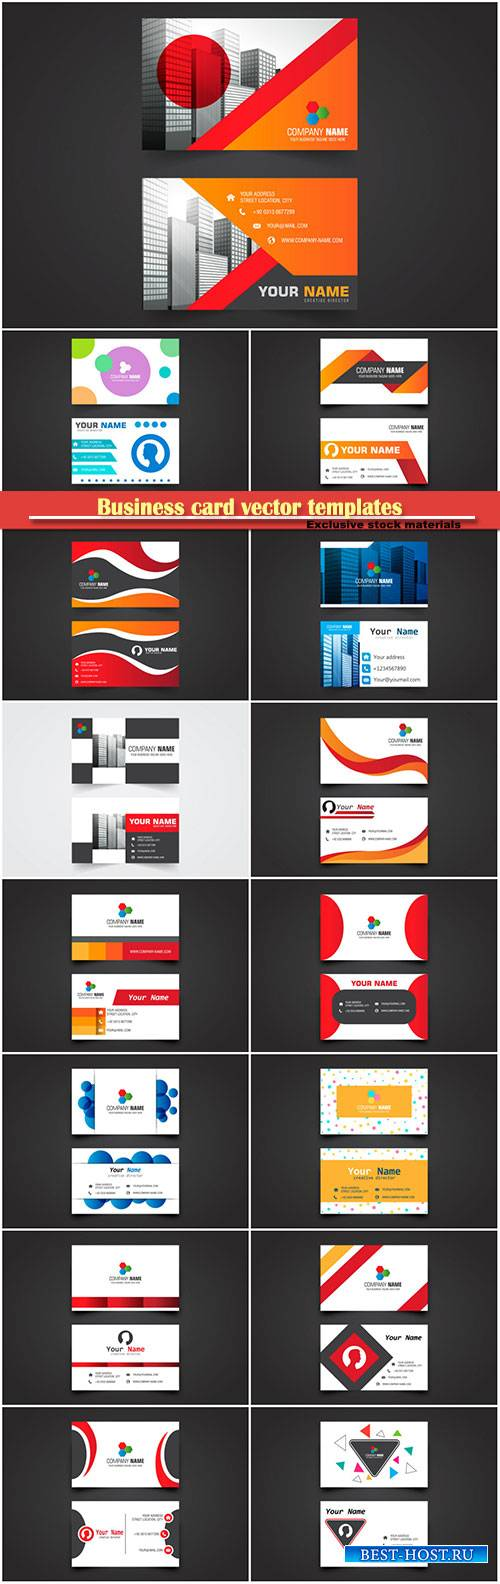 Business card vector templates # 34